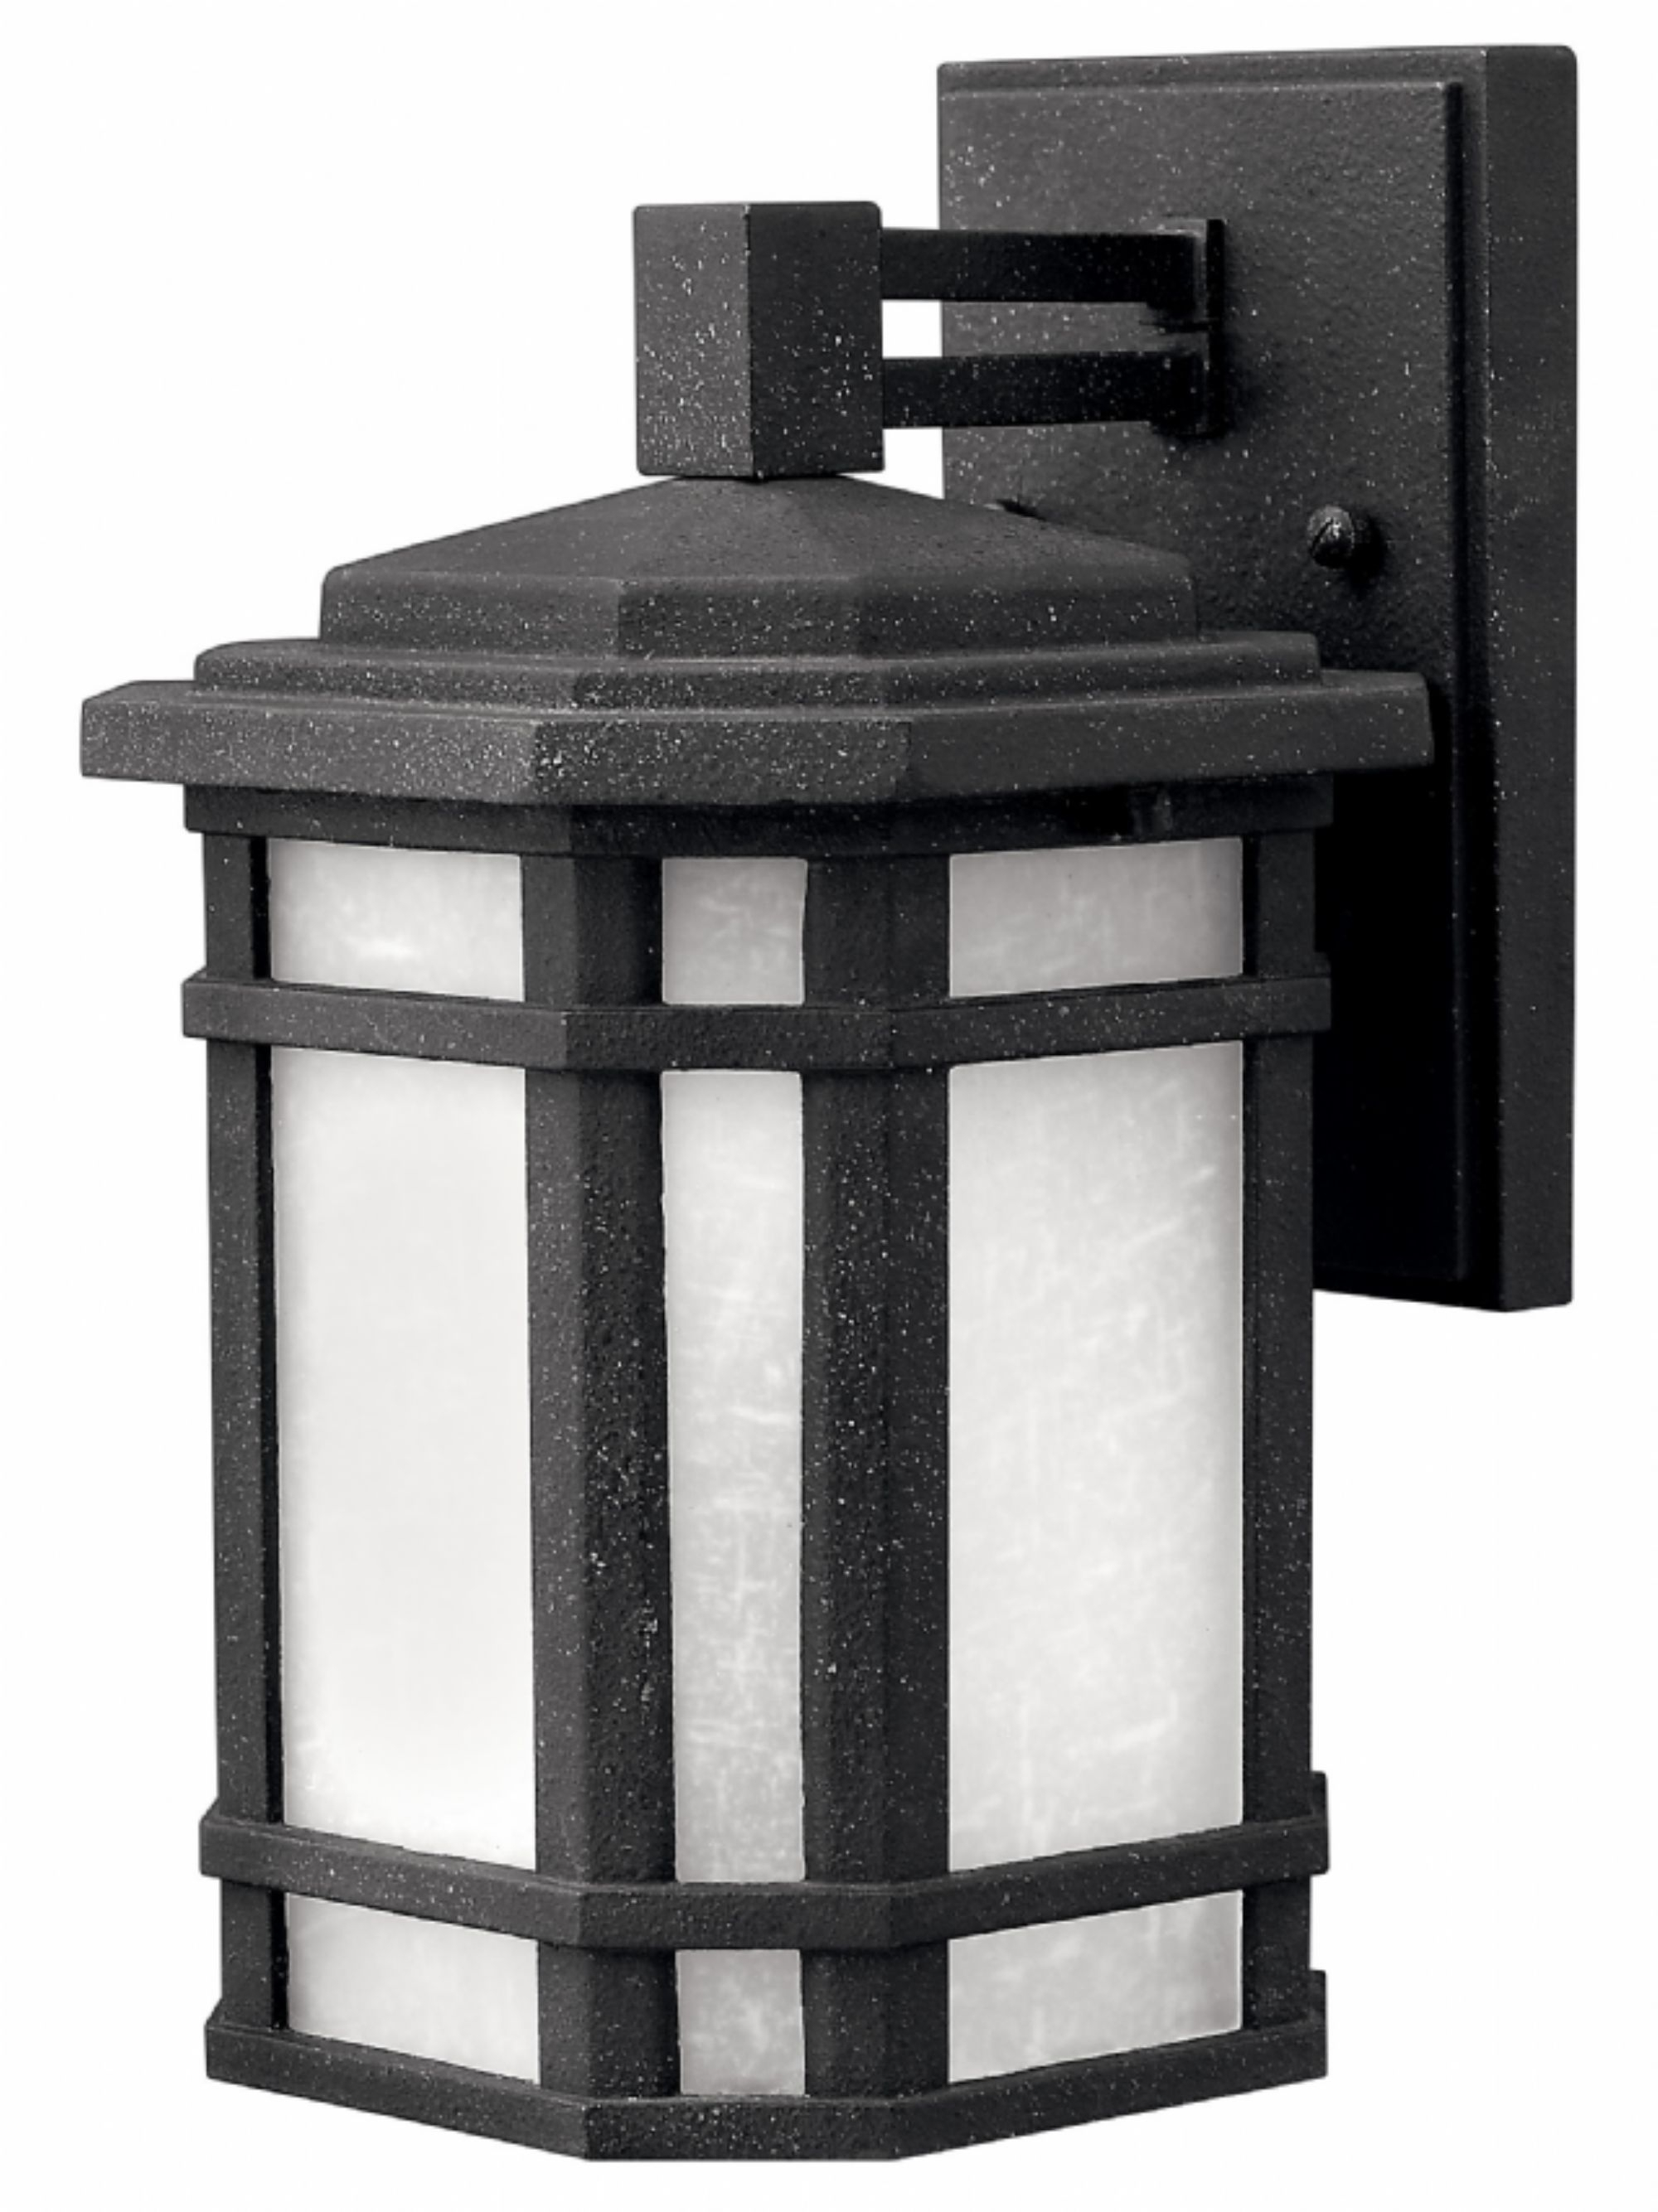 Inspiration about Vintage Black Cherry Creek > Exterior Wall Mount Intended For Japanese Outdoor Wall Lighting (#4 of 15)